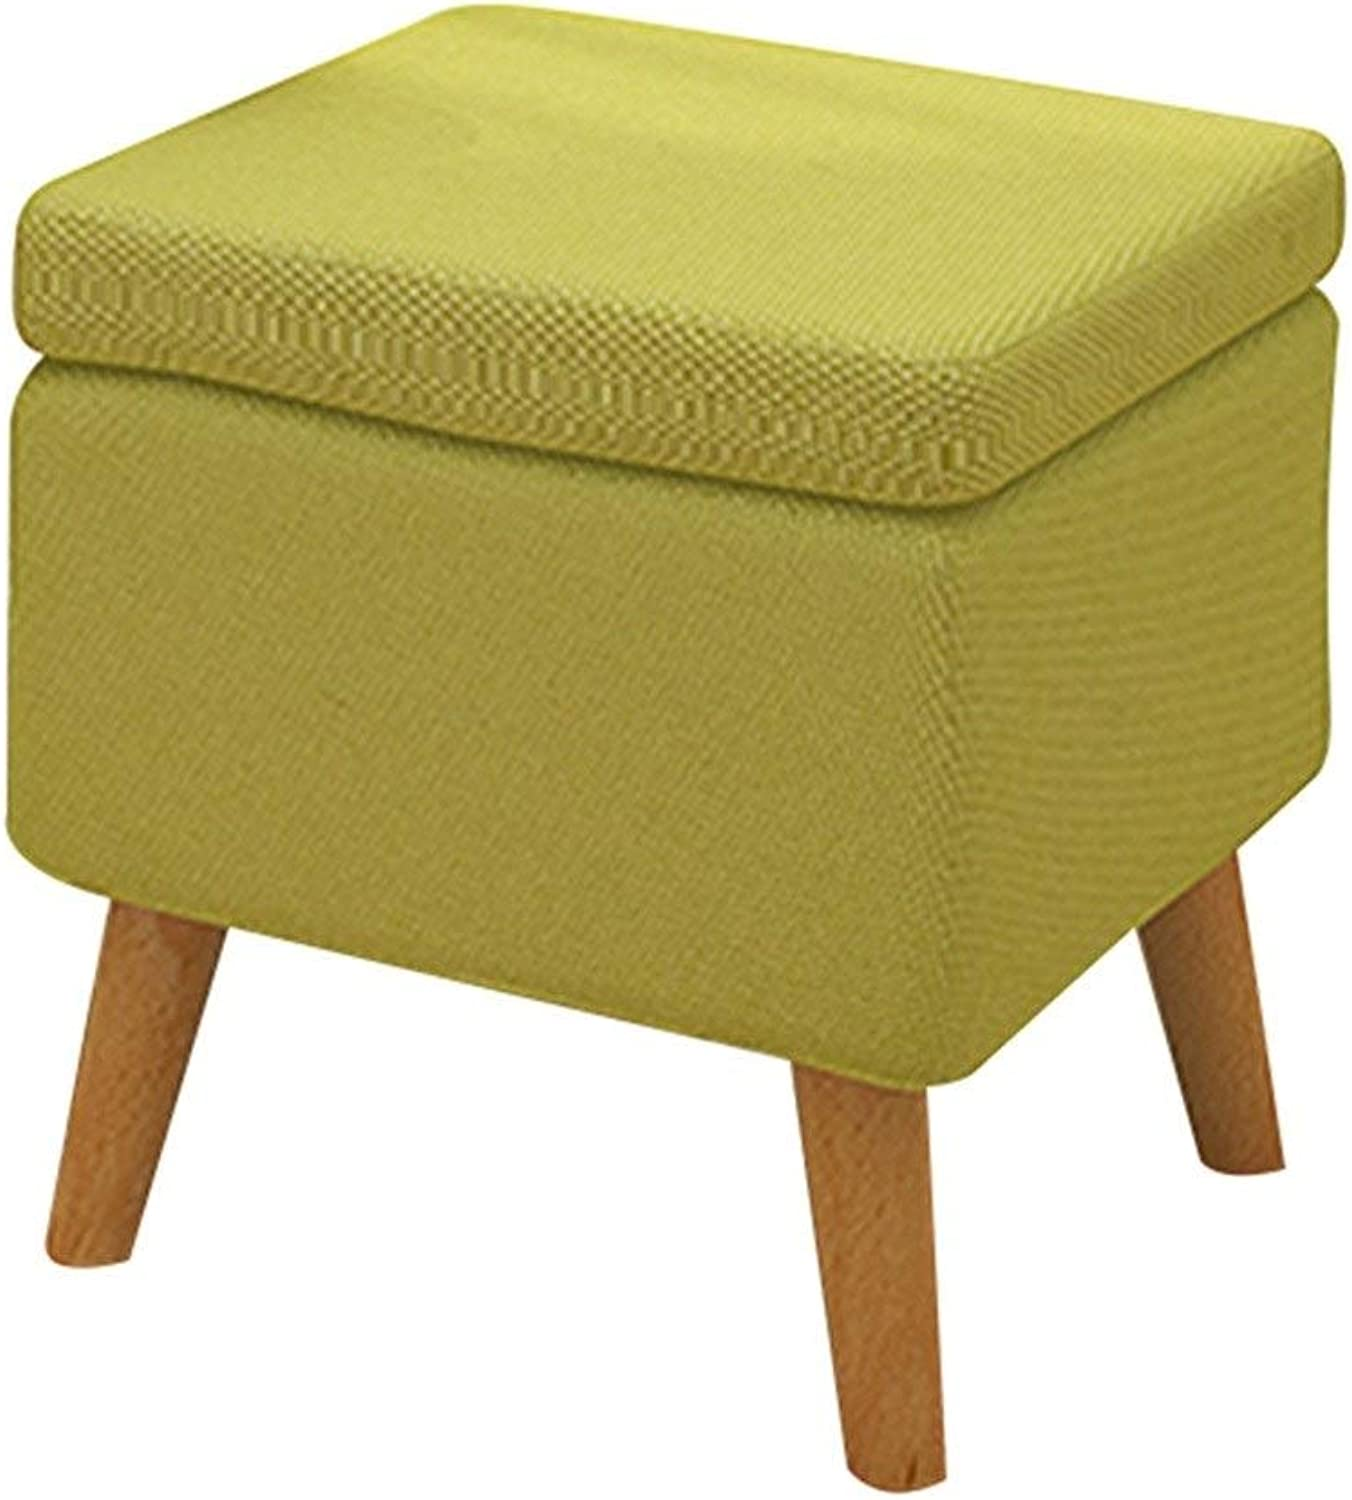 Makeup Stool Solid Wood shoes Bench Storage Bench Sofa Bench Coffee Table Stool Fabric Dressing Stool Storage Stool (color   Green, Size   40  40  42cm)